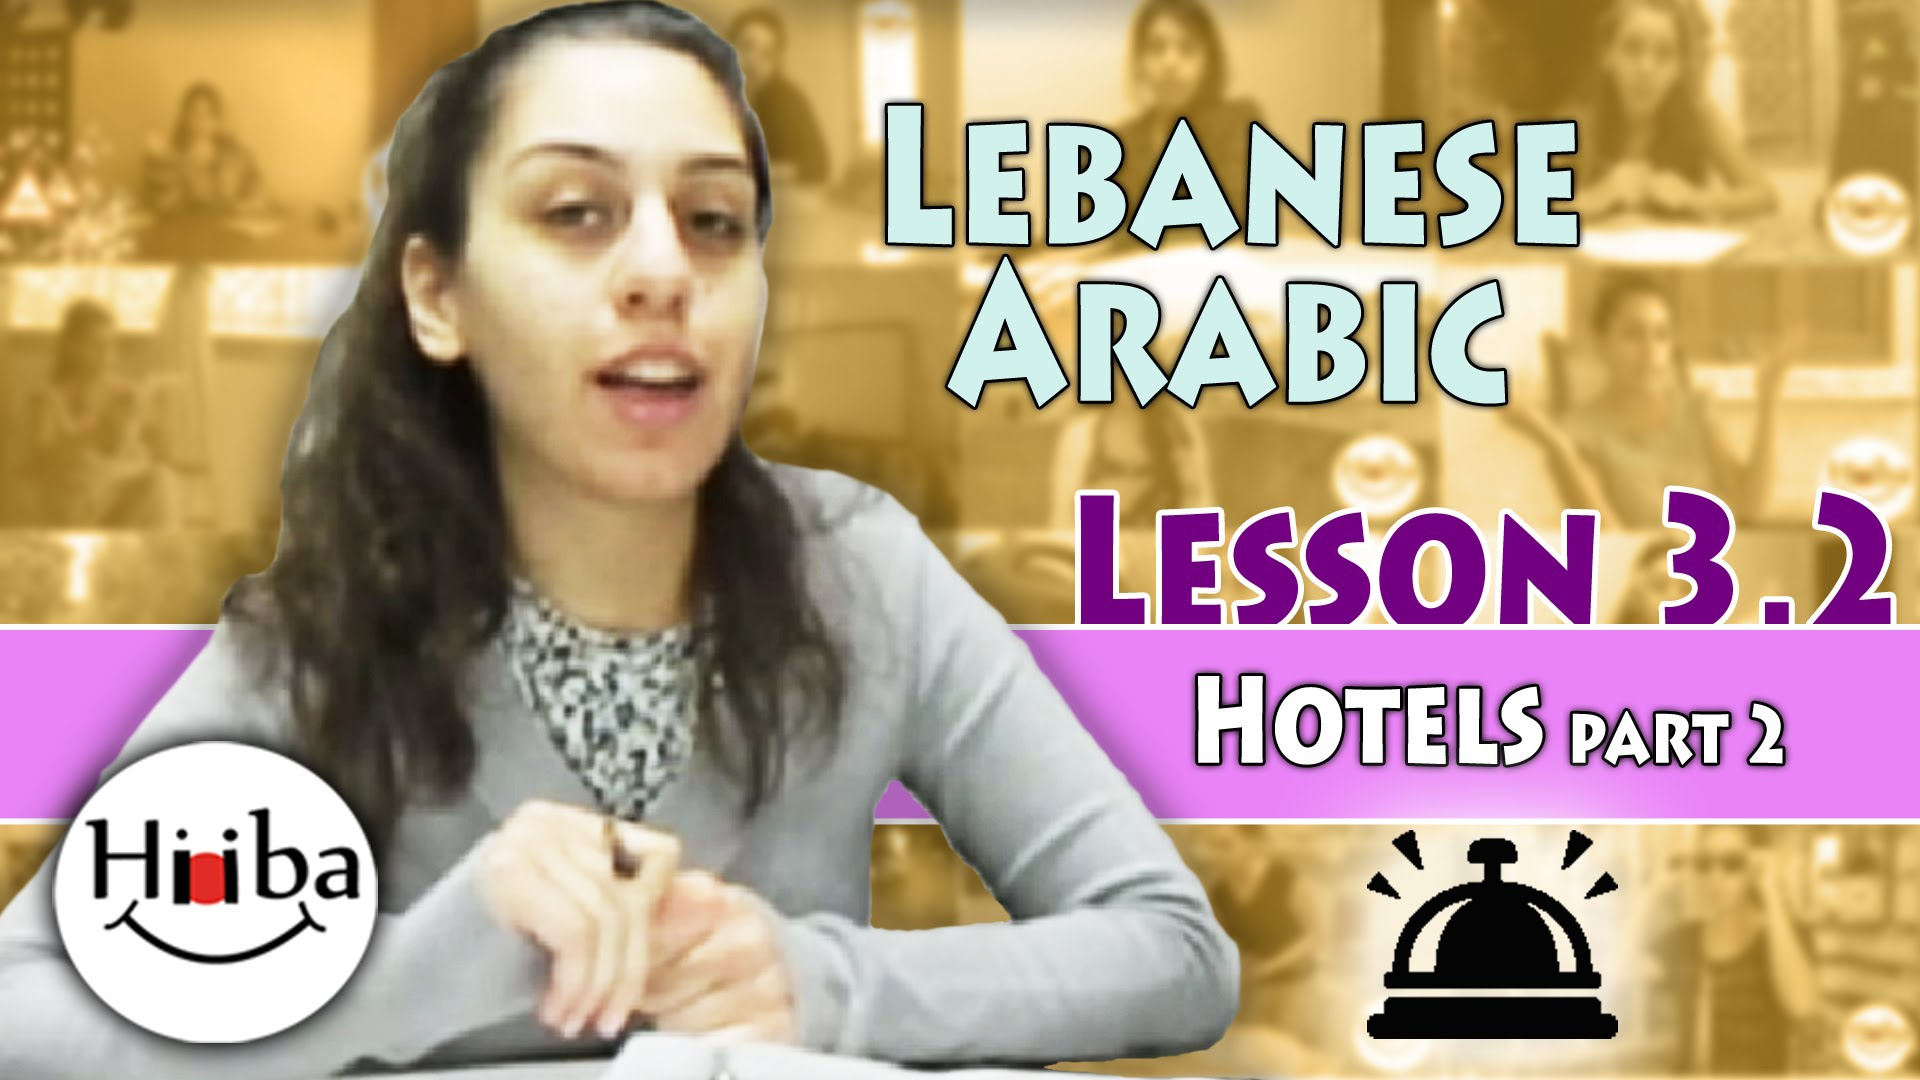 This is the thumbnail for the video of the 2nd part of the Lebanese lesson 3 about hotels. It has a brownish background, with a portrait of Hiba Najem, a reception bell, and the title written in purple.